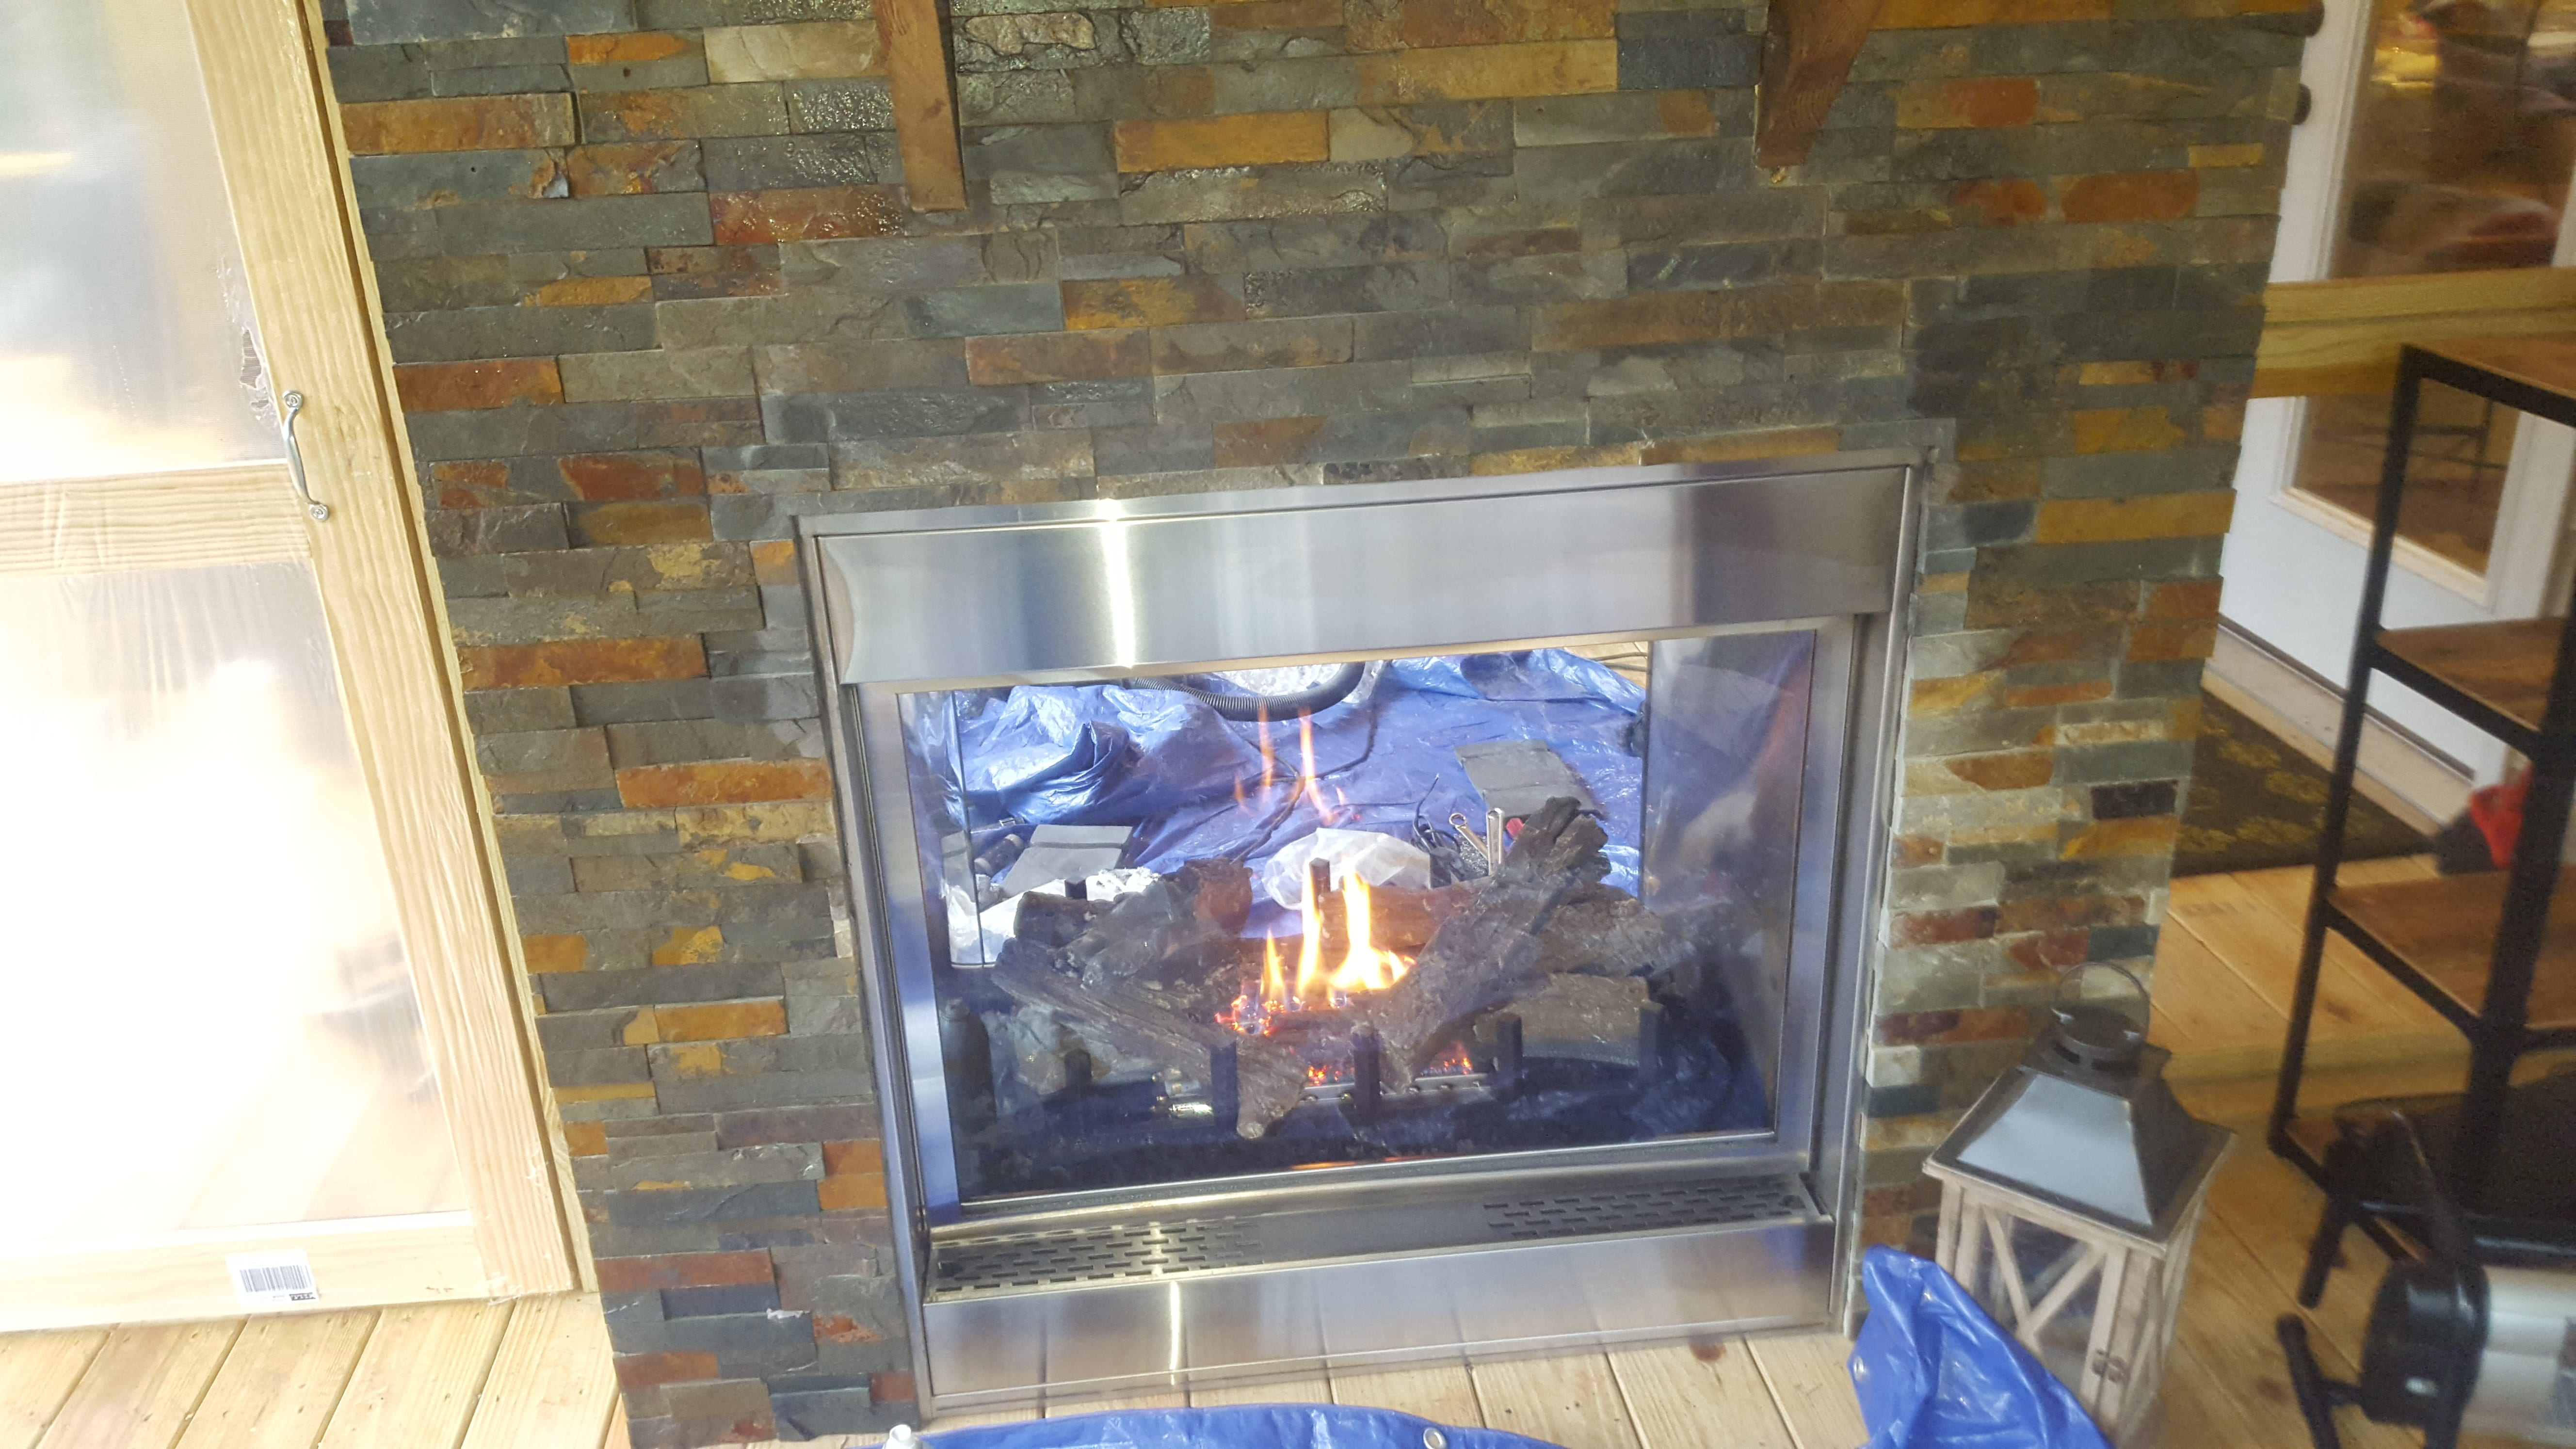 Fireplace service, Fireplace maintenance and repair, Gas logs repair, Gas logs maintenance, Gas logs sales and installation, Restaurant equipment sales and installation, Restaurant equipment repair and maintenance, Outdoor gas logs, Fire pit maintenance and repair, Fireplace Inspections, Gas Grill Service, Gas Lines